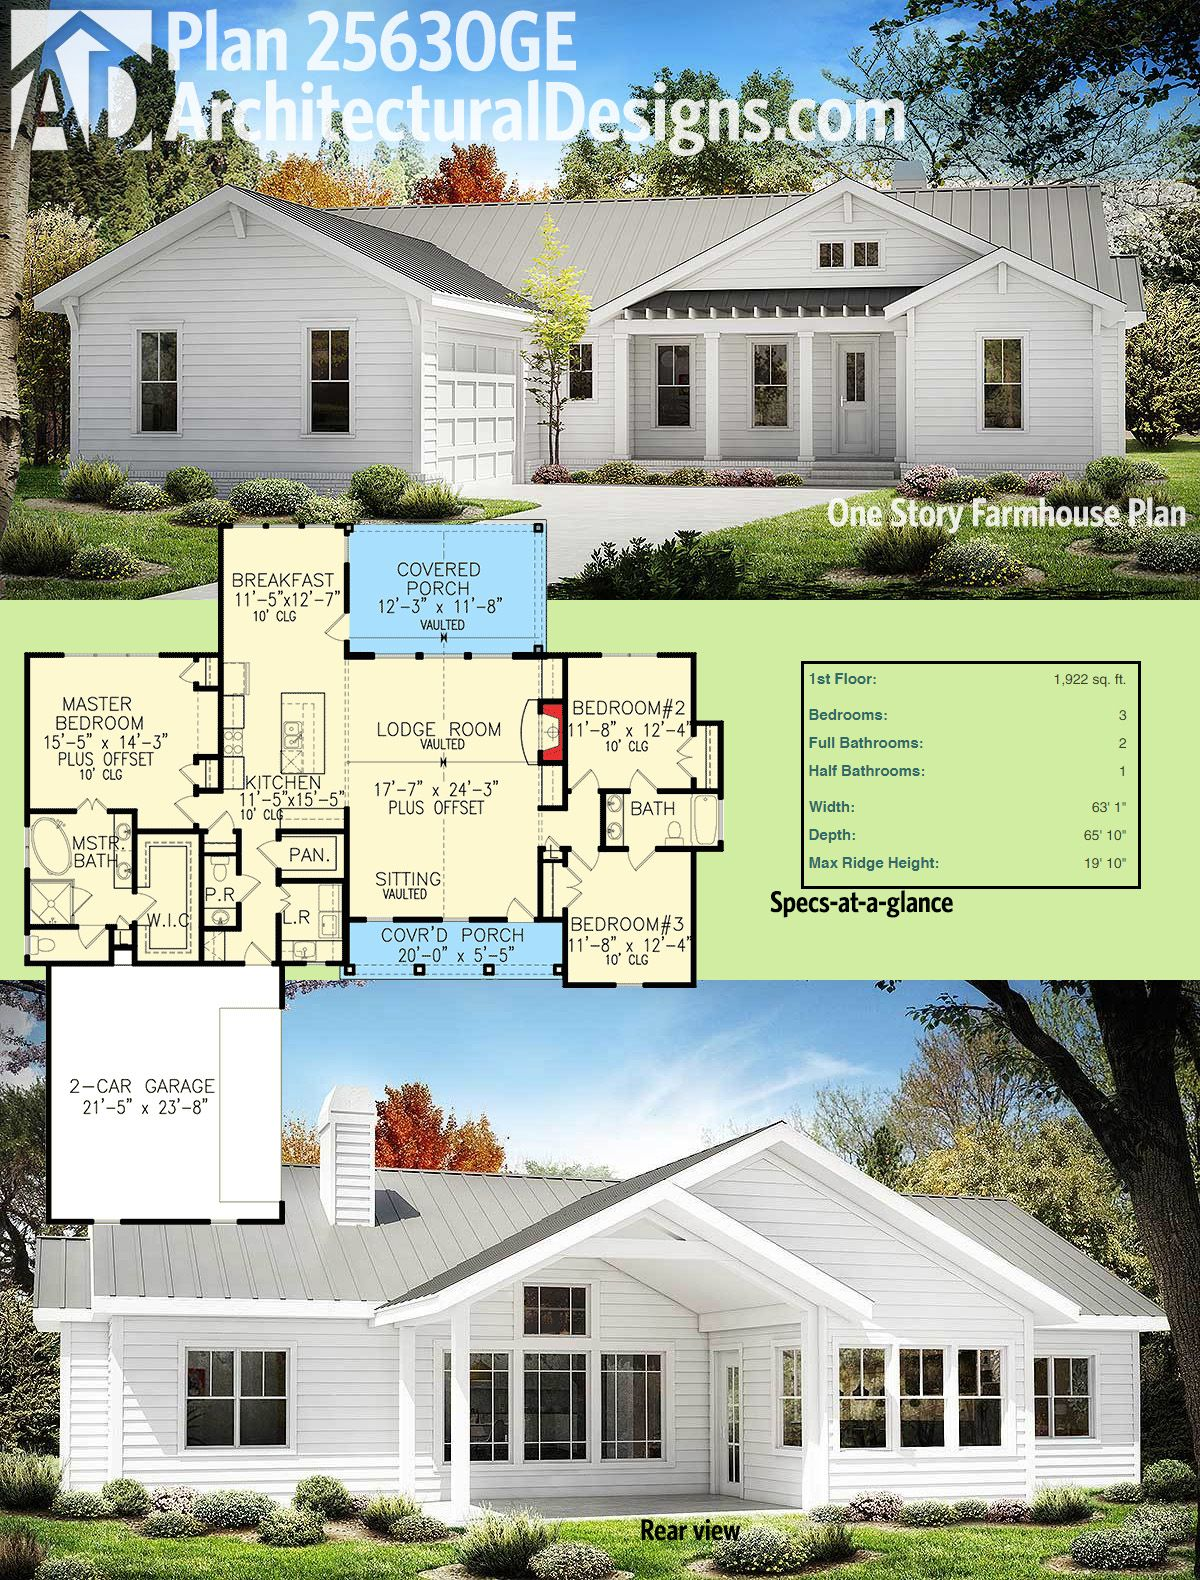 Plan 25630ge one story farmhouse plan farmhouse plans for House plans farmhouse modern